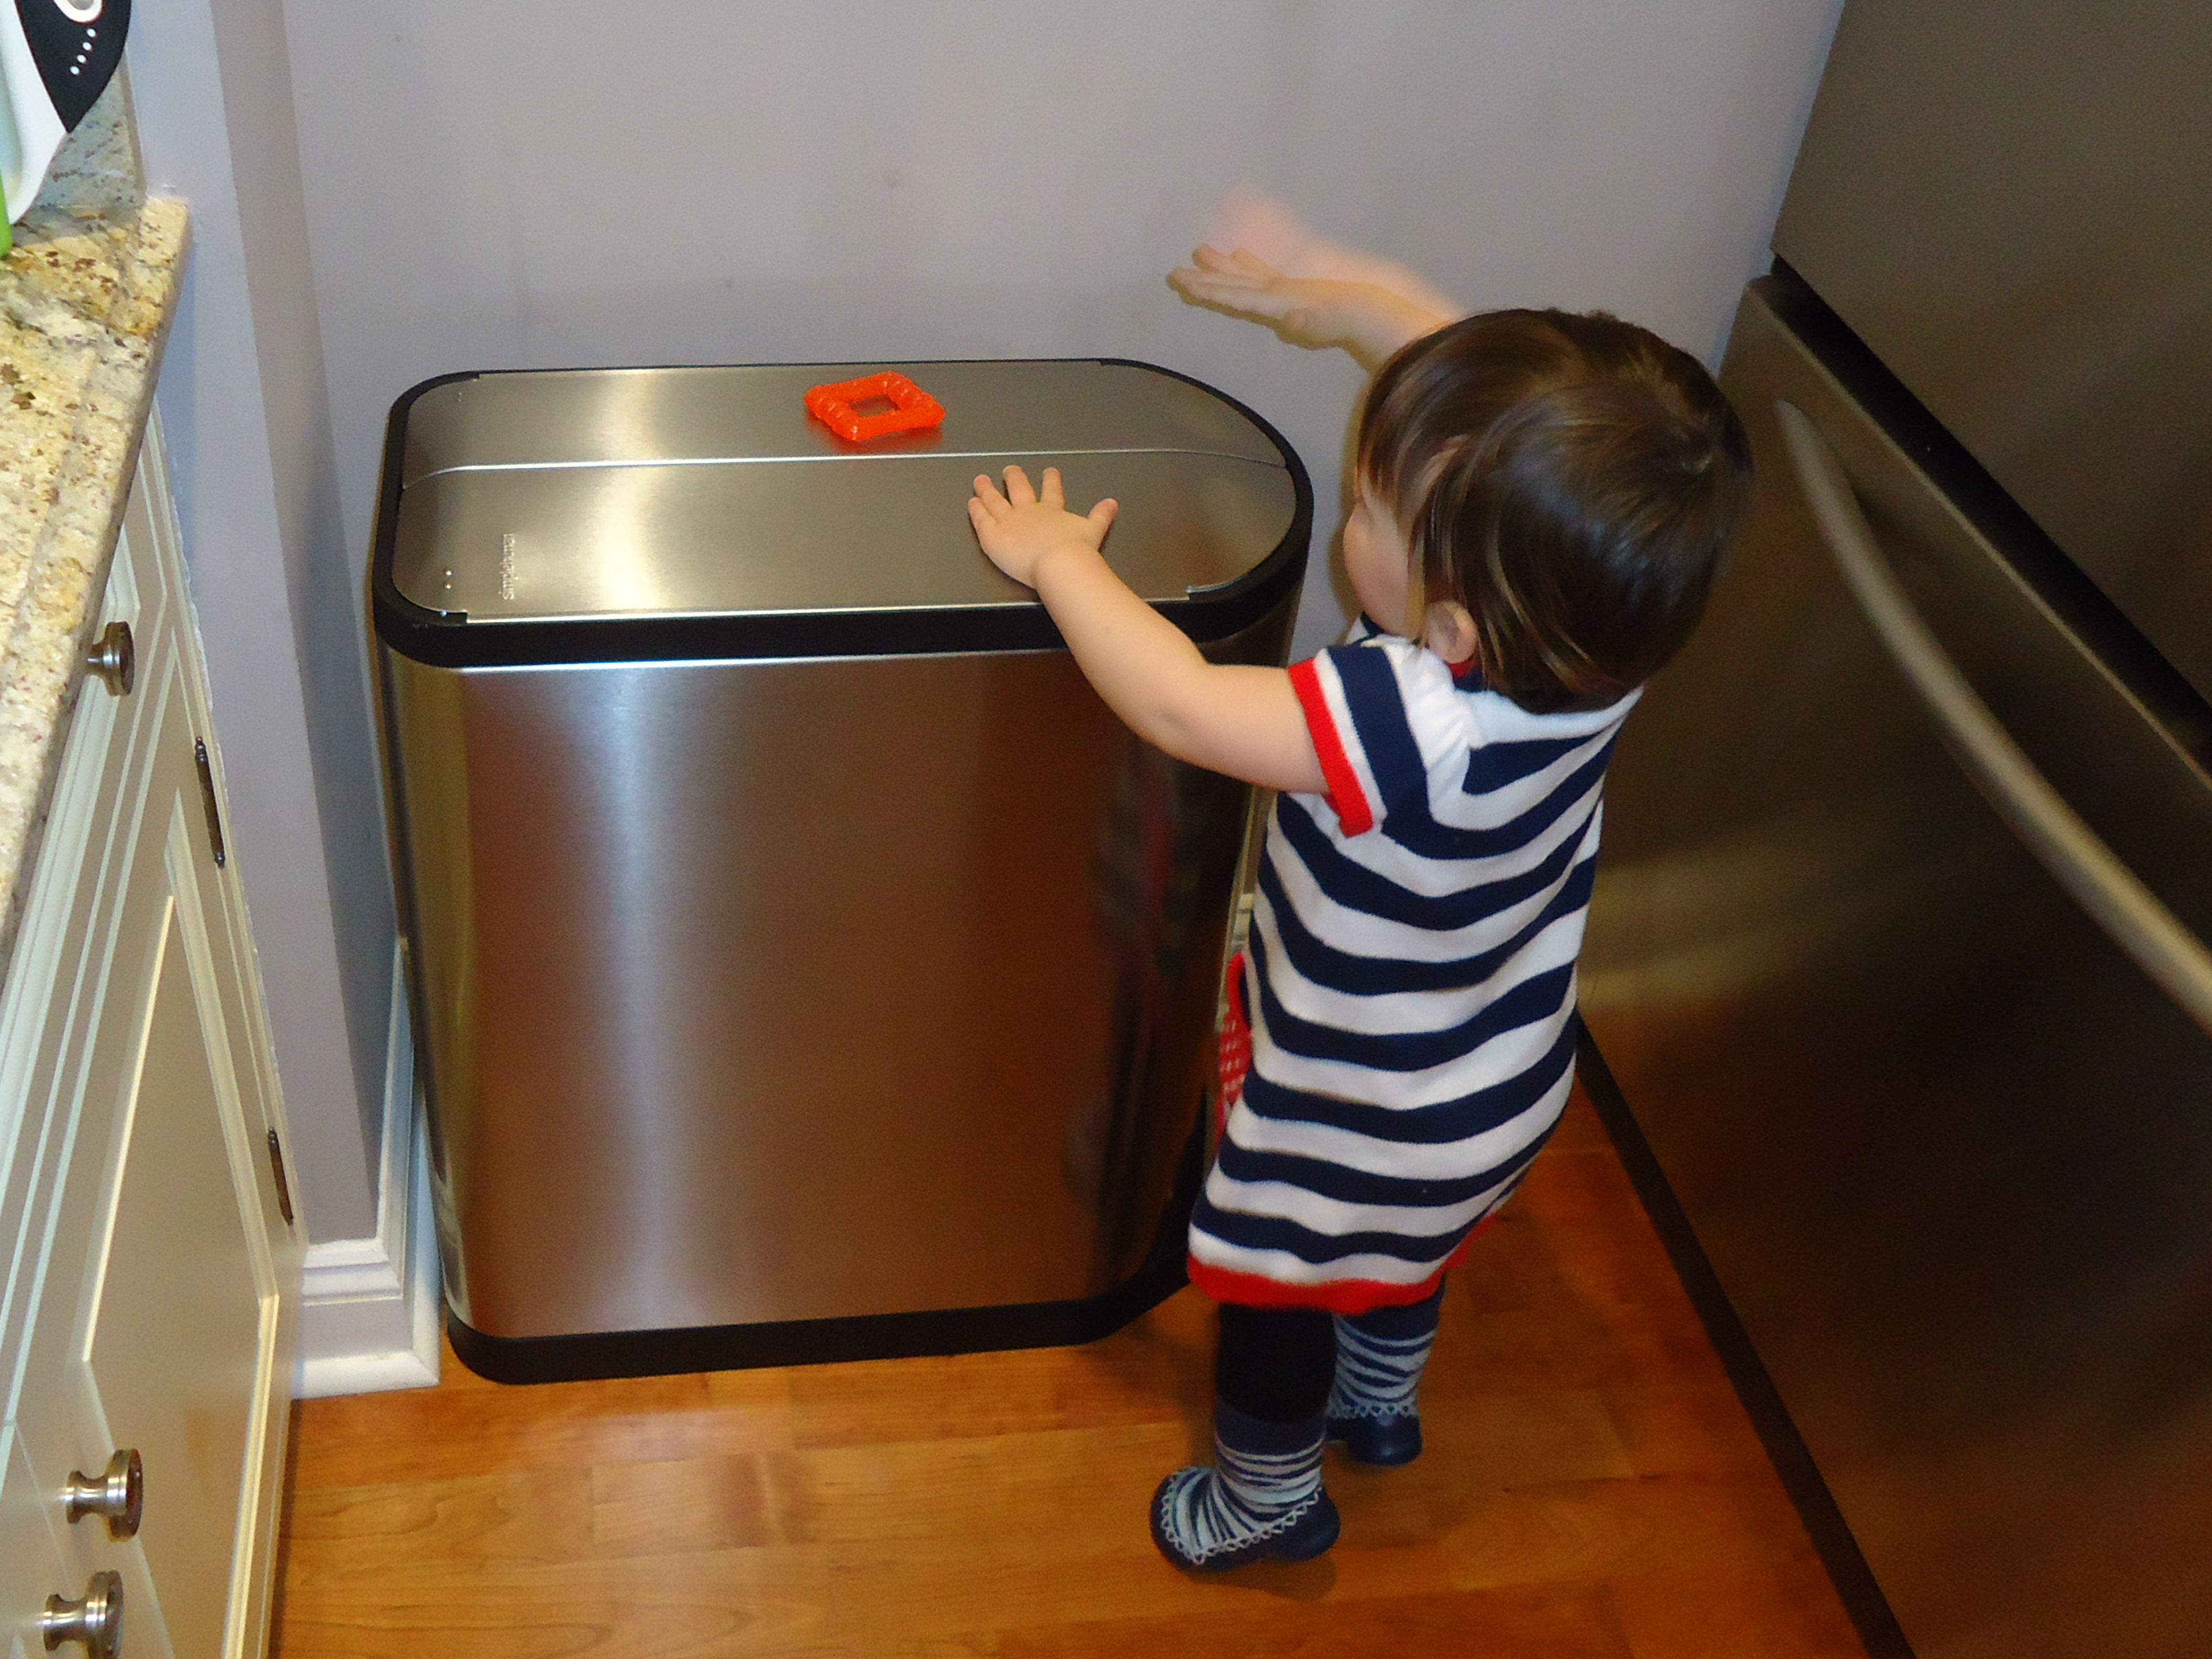 baby proofing baby proofing garbage cans